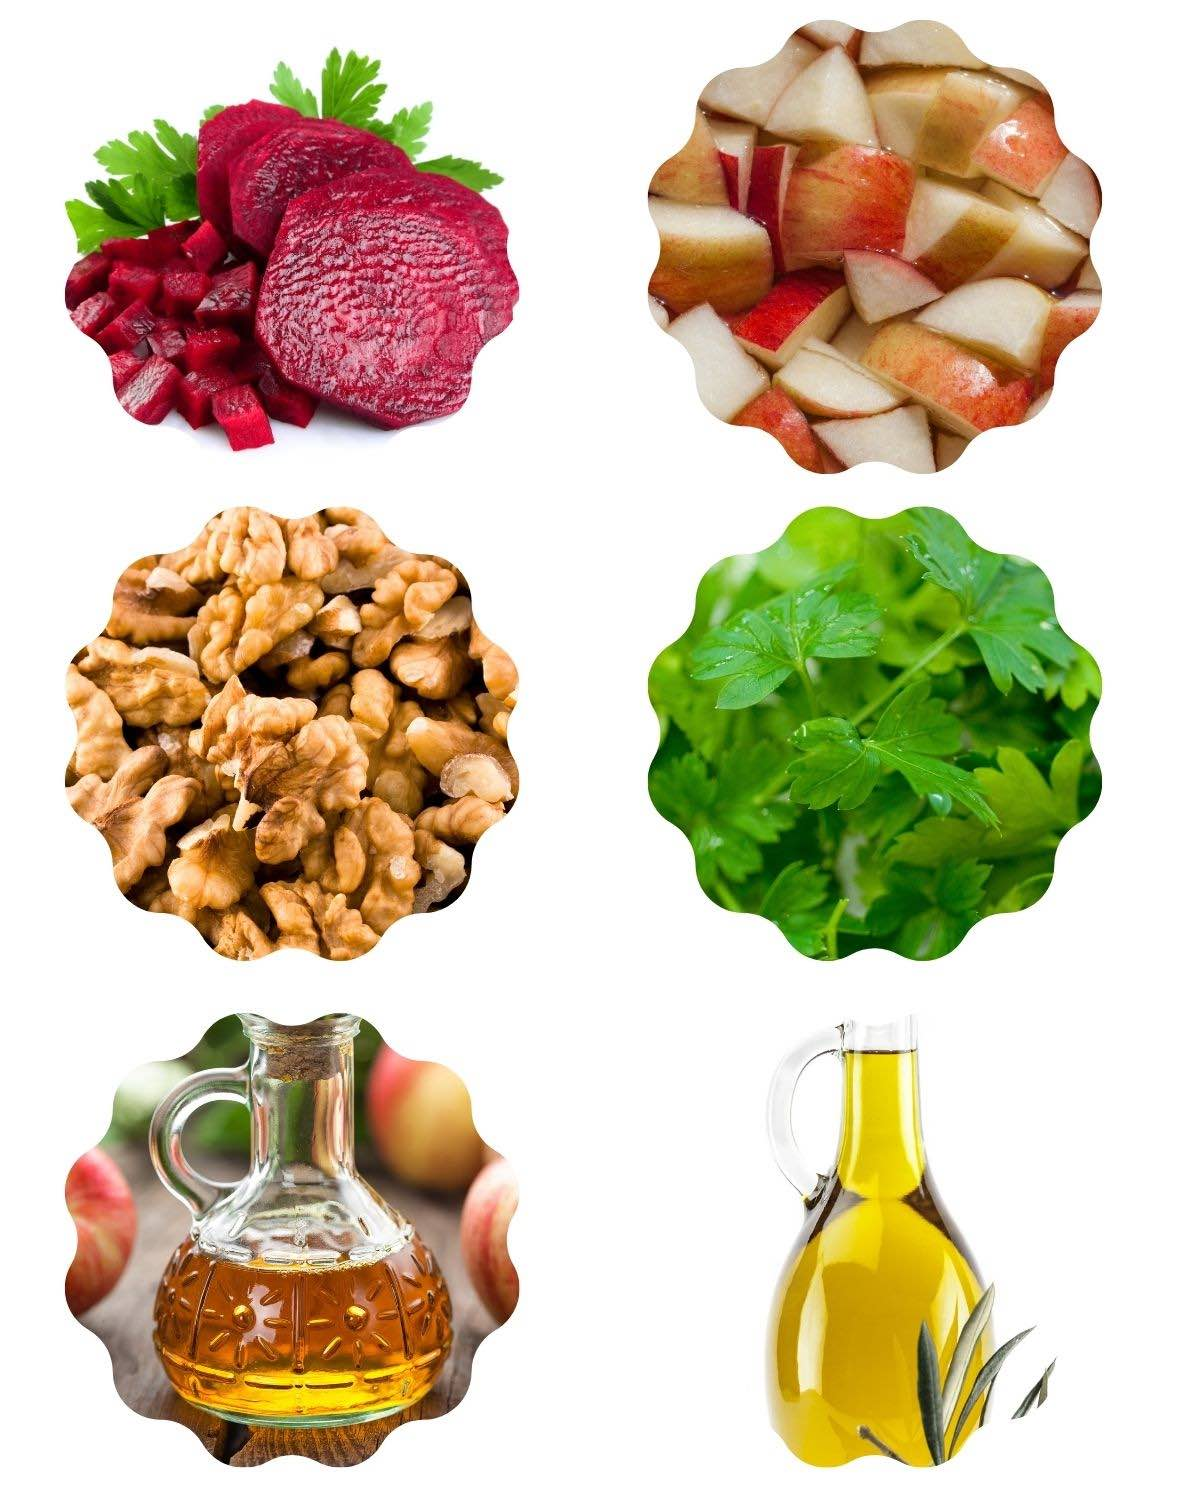 6 images with ingredients for a beet apple walnut salad: beets, apple, walnuts, parsley, oil, vinegar.